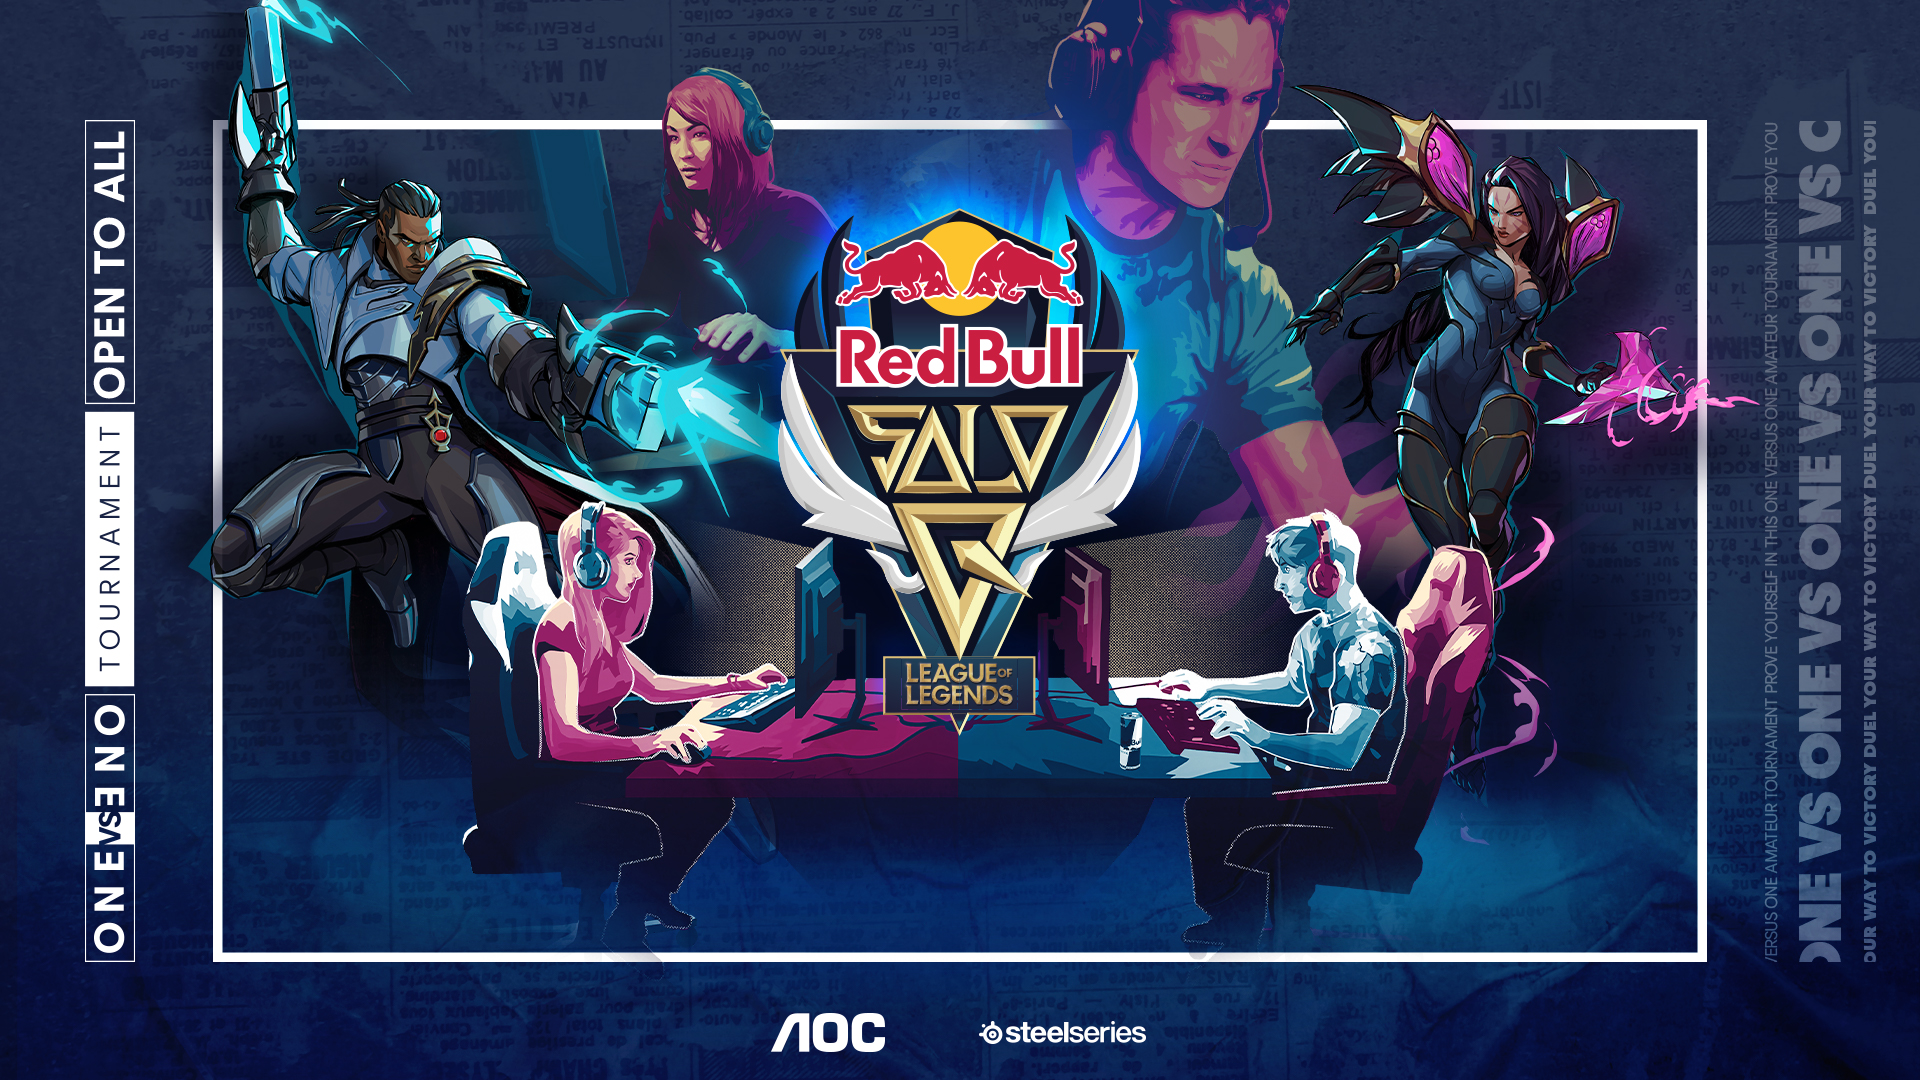 Red Bull Solo Q promotional poster